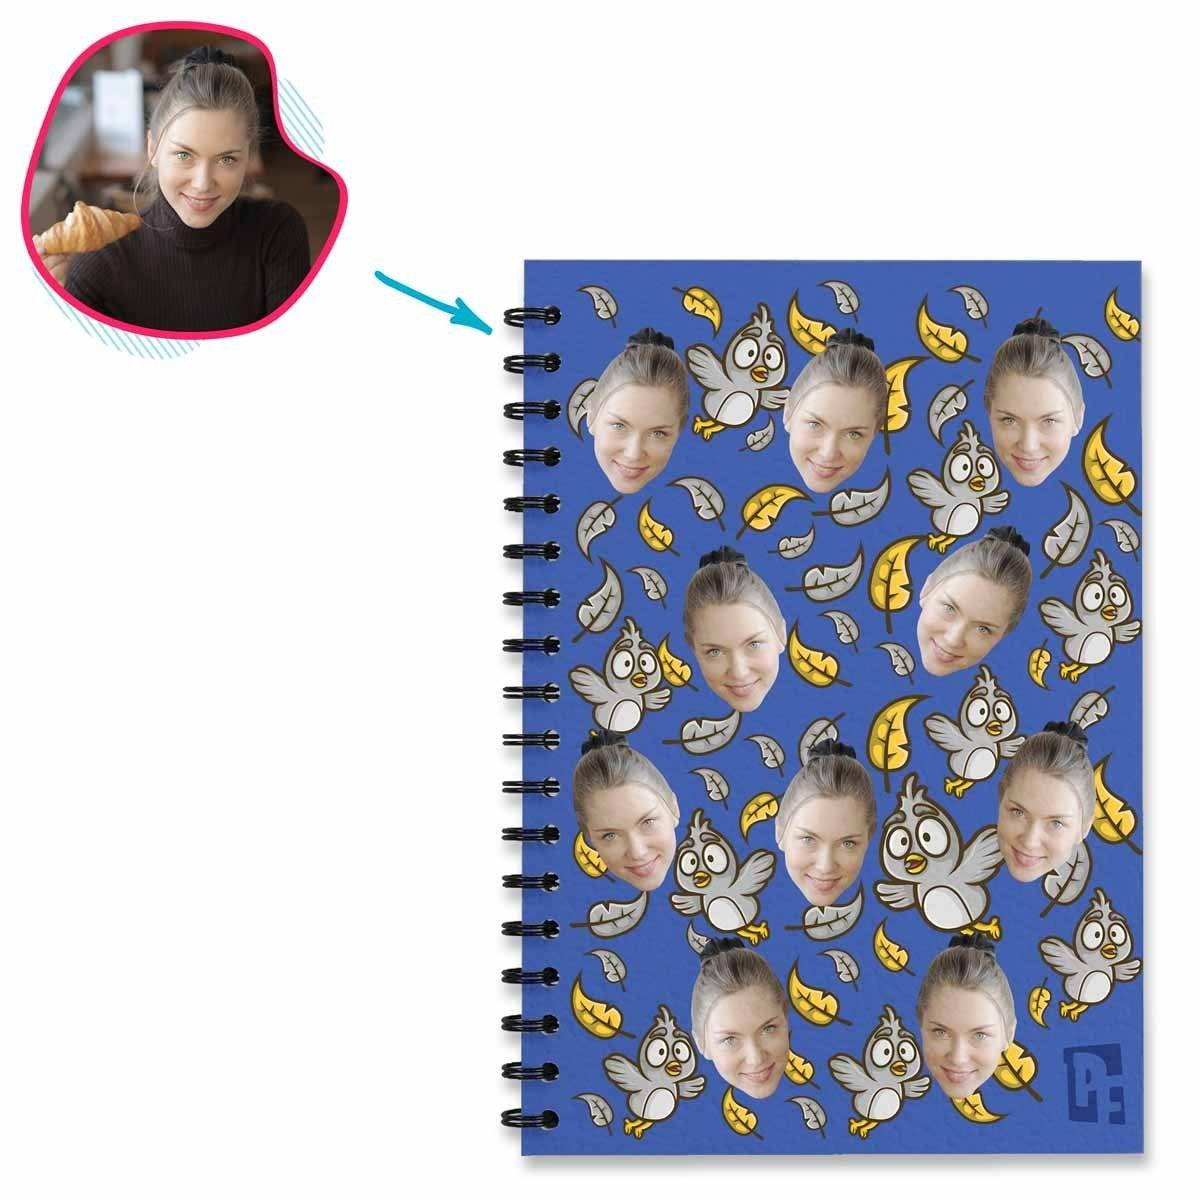 darkblue Bird Notebook personalized with photo of face printed on them